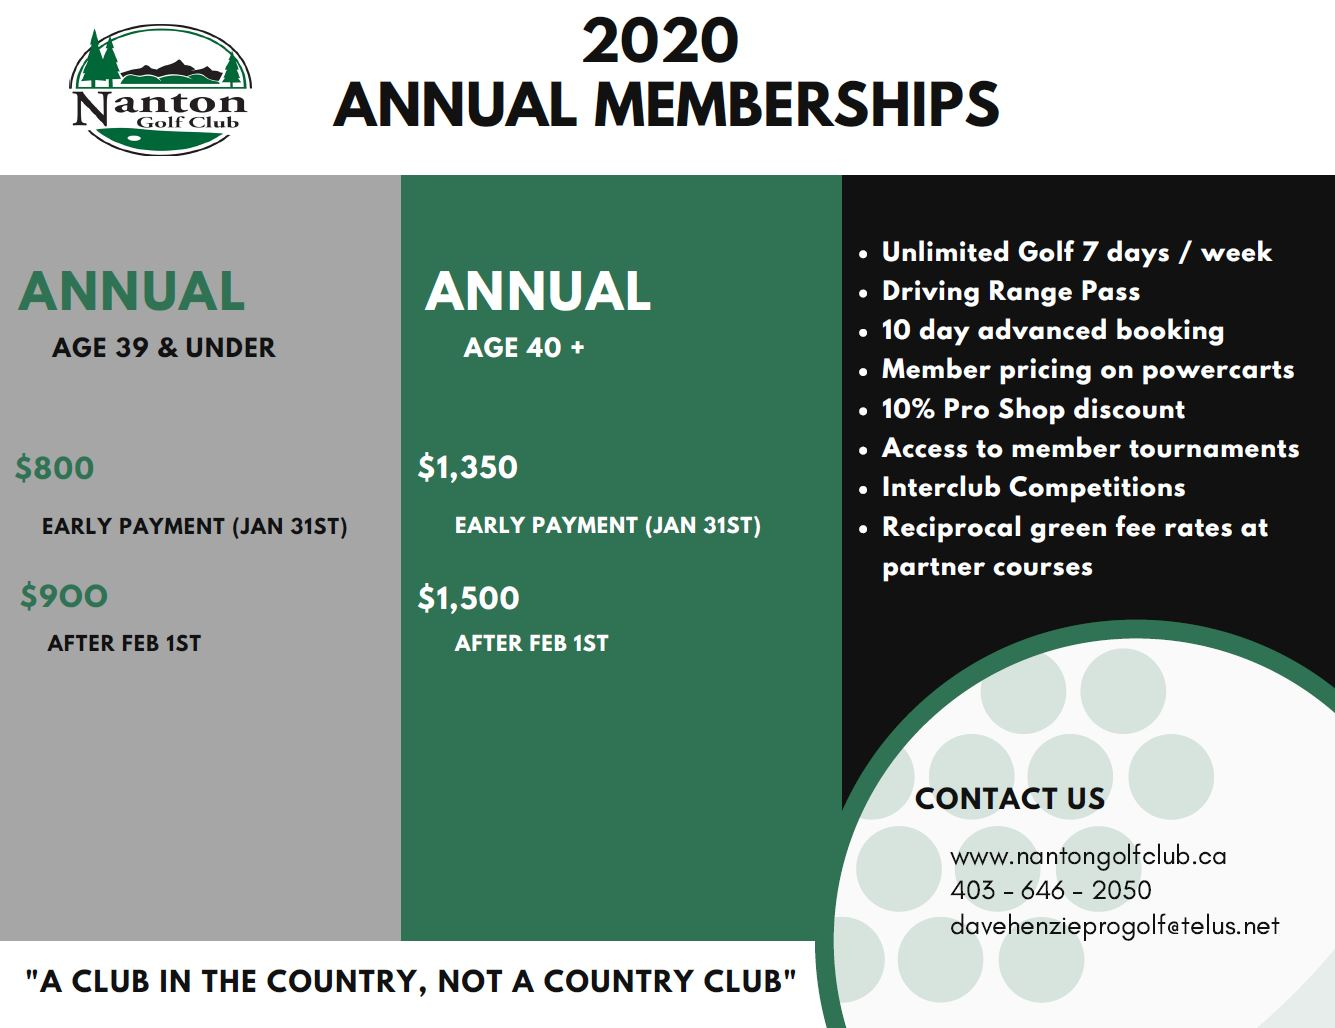 2020 Annual Memberships